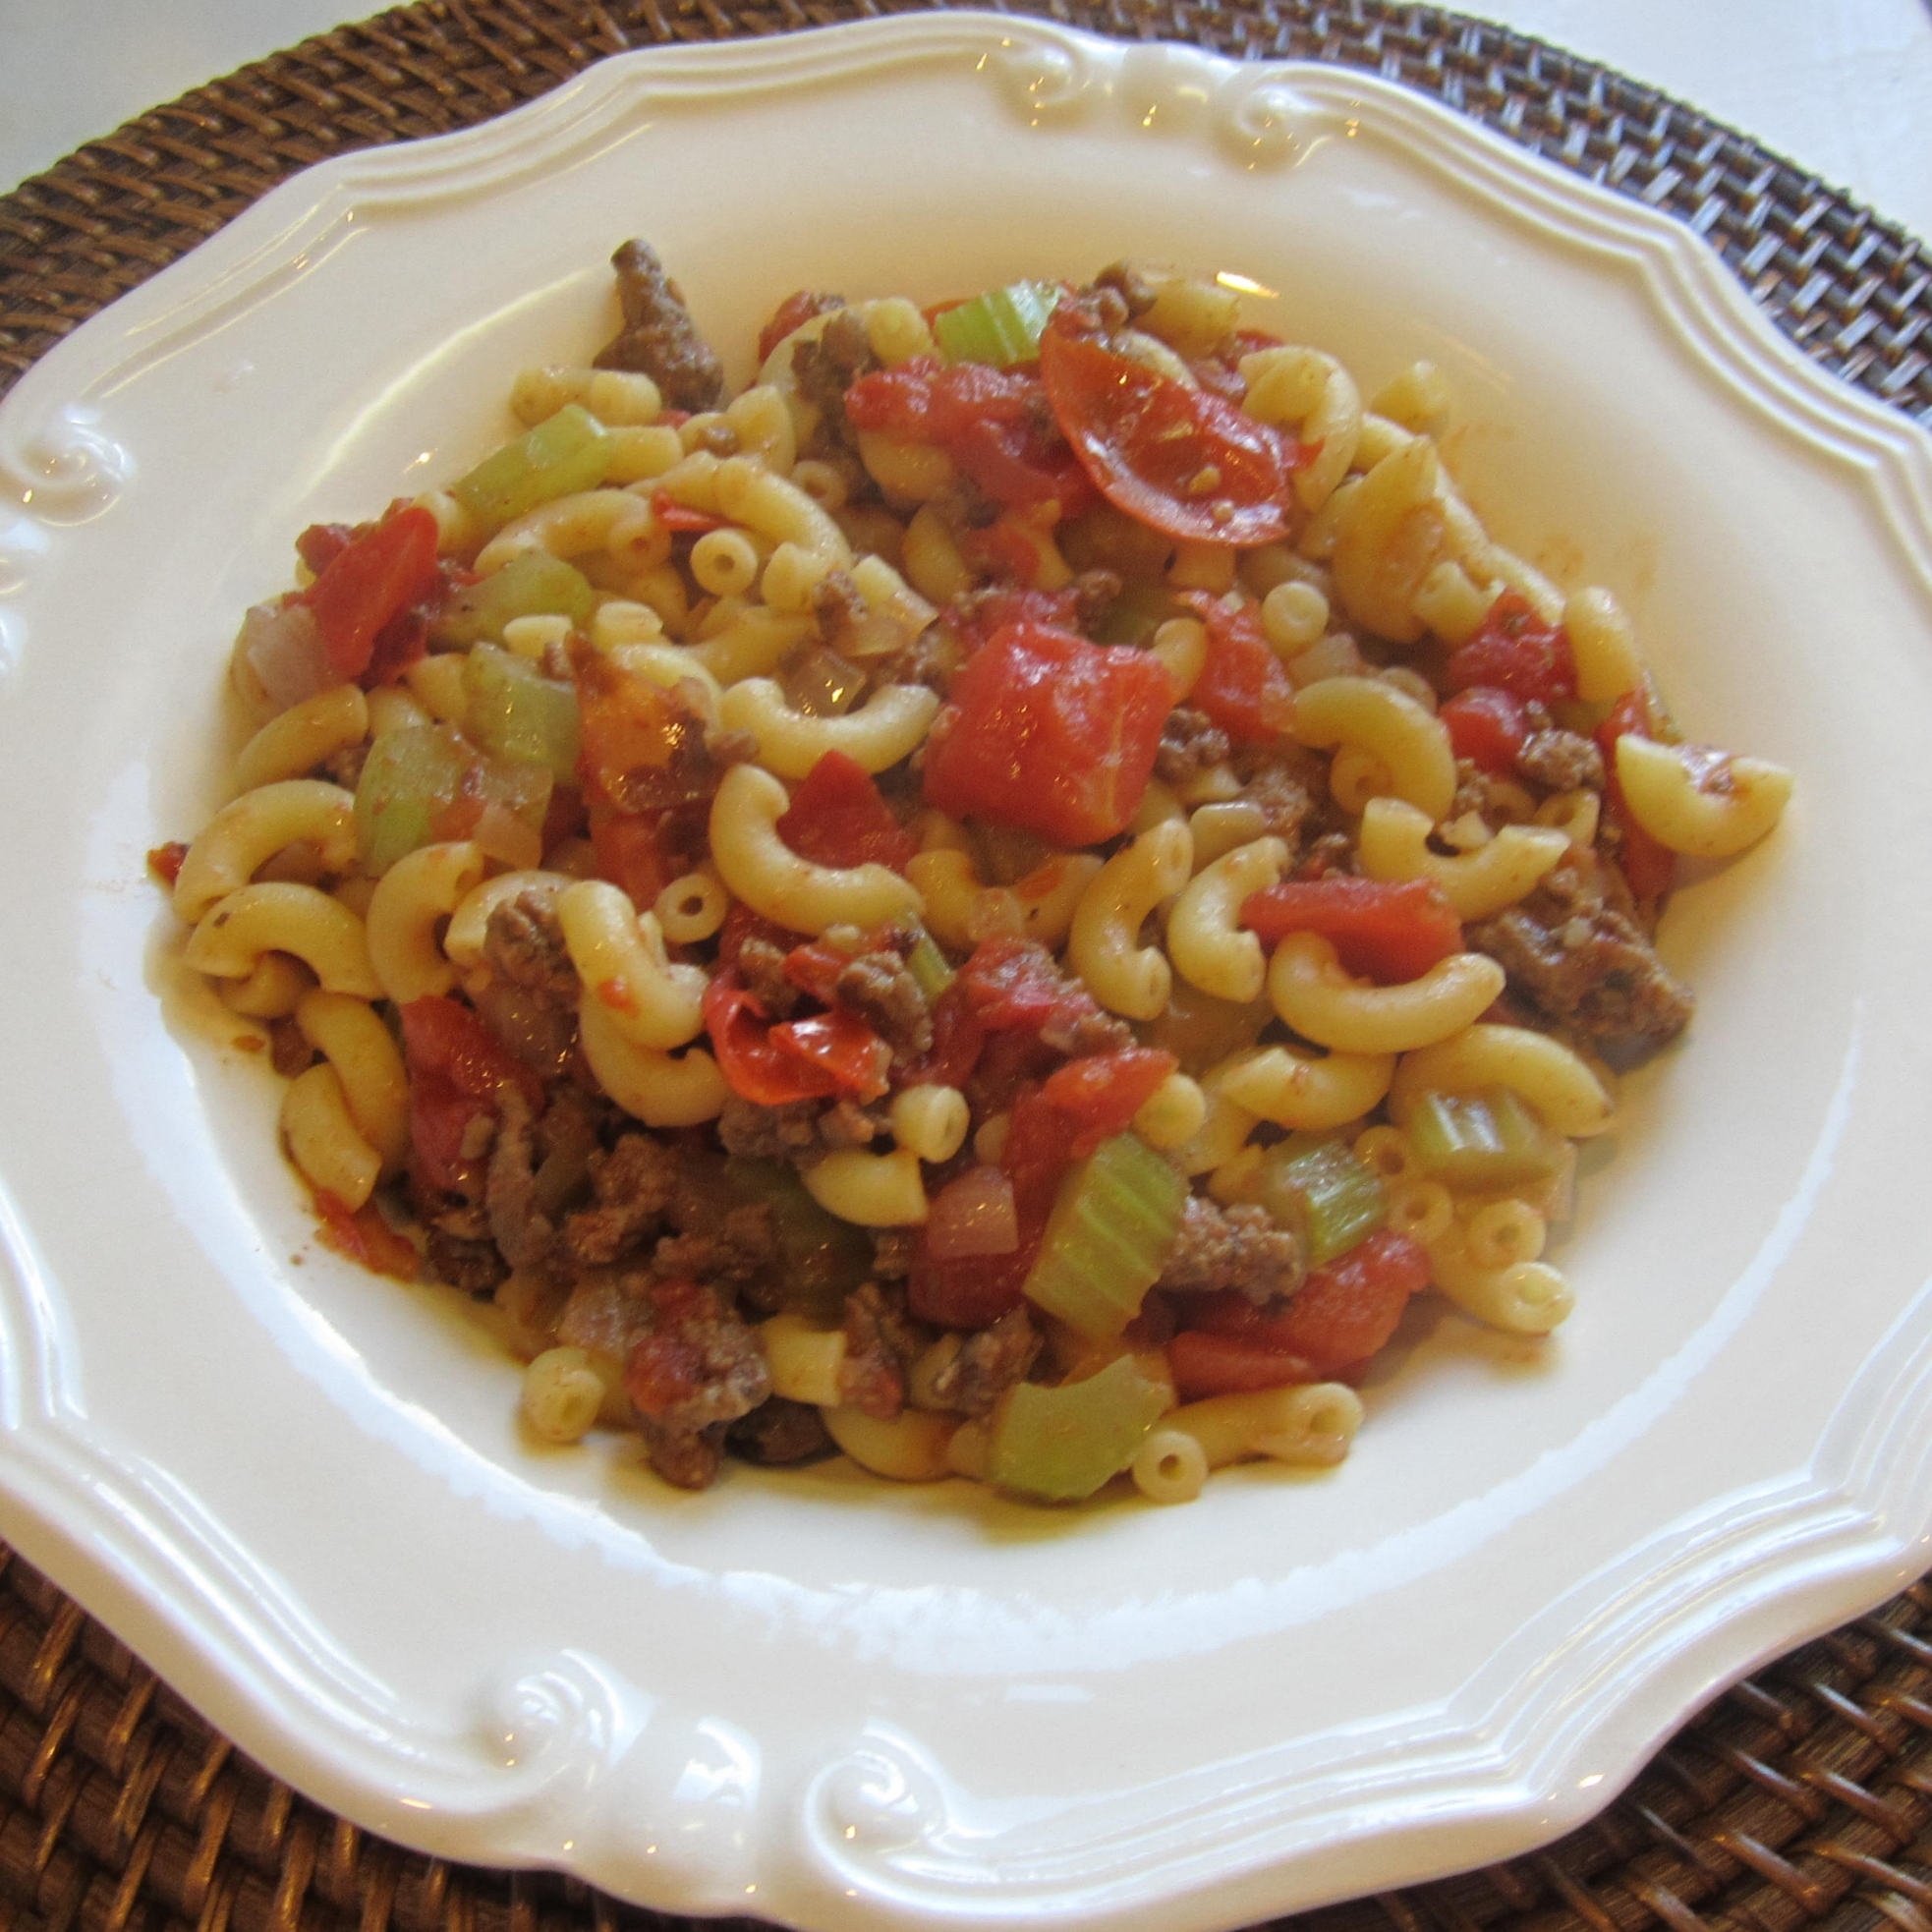 Microwave goulash on a white plate